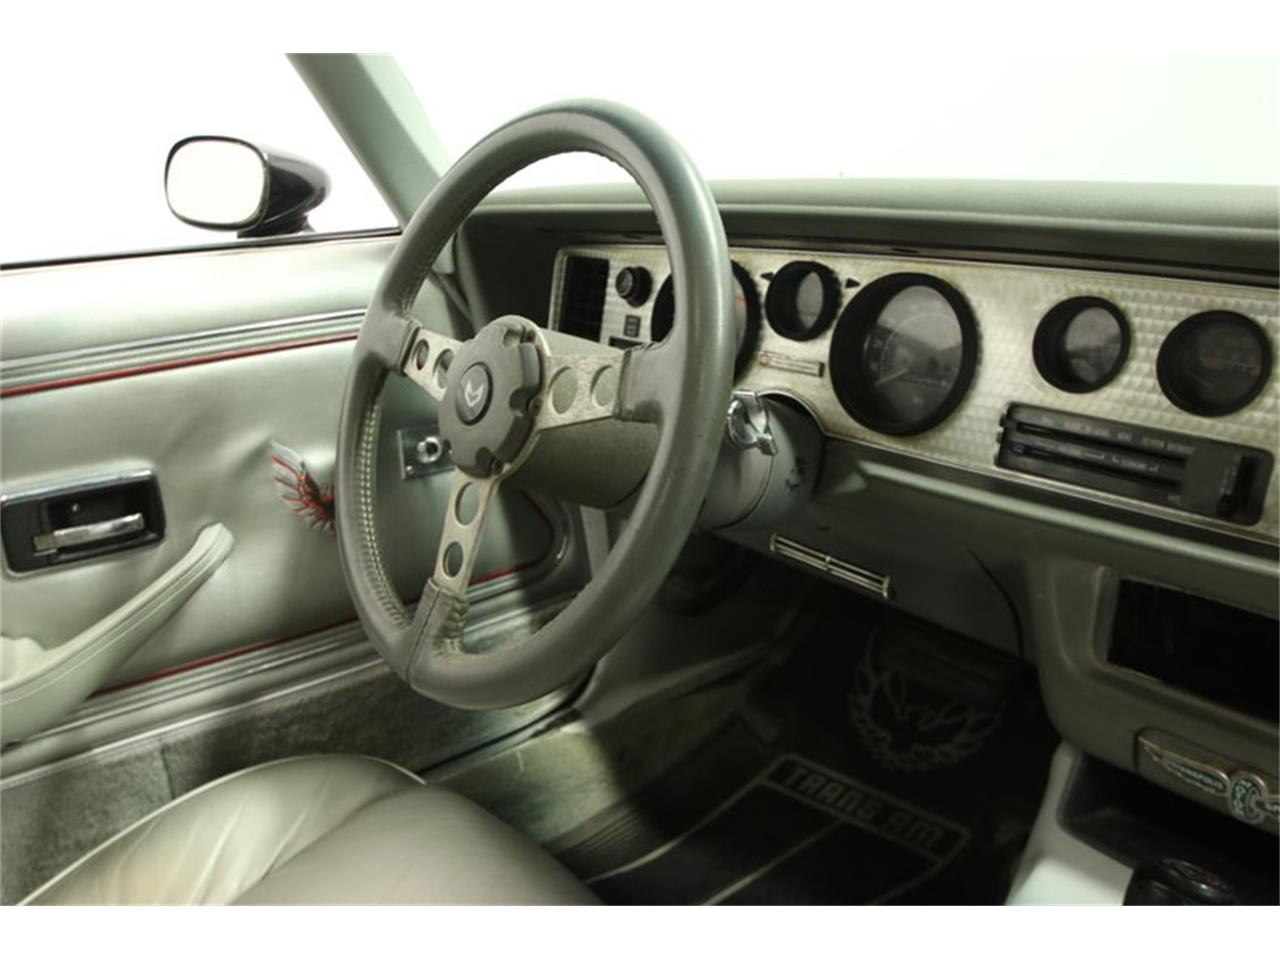 Large Picture of '79 Pontiac Firebird located in Lutz Florida - $19,995.00 Offered by Streetside Classics - Tampa - N785